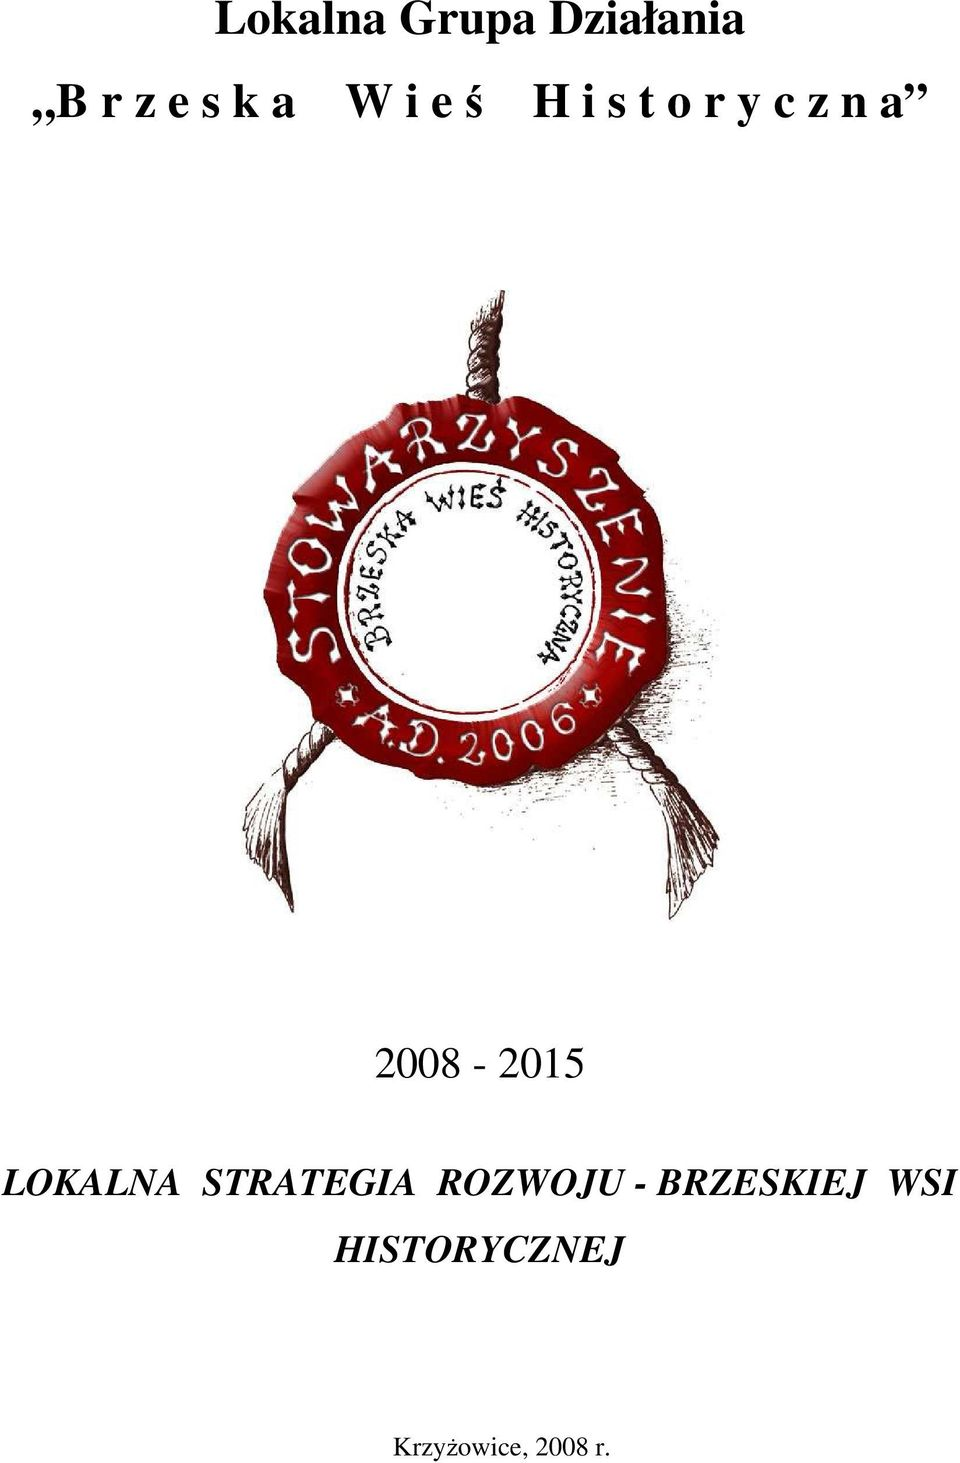 2008-2015 LOKALNA STRATEGIA ROZWOJU -